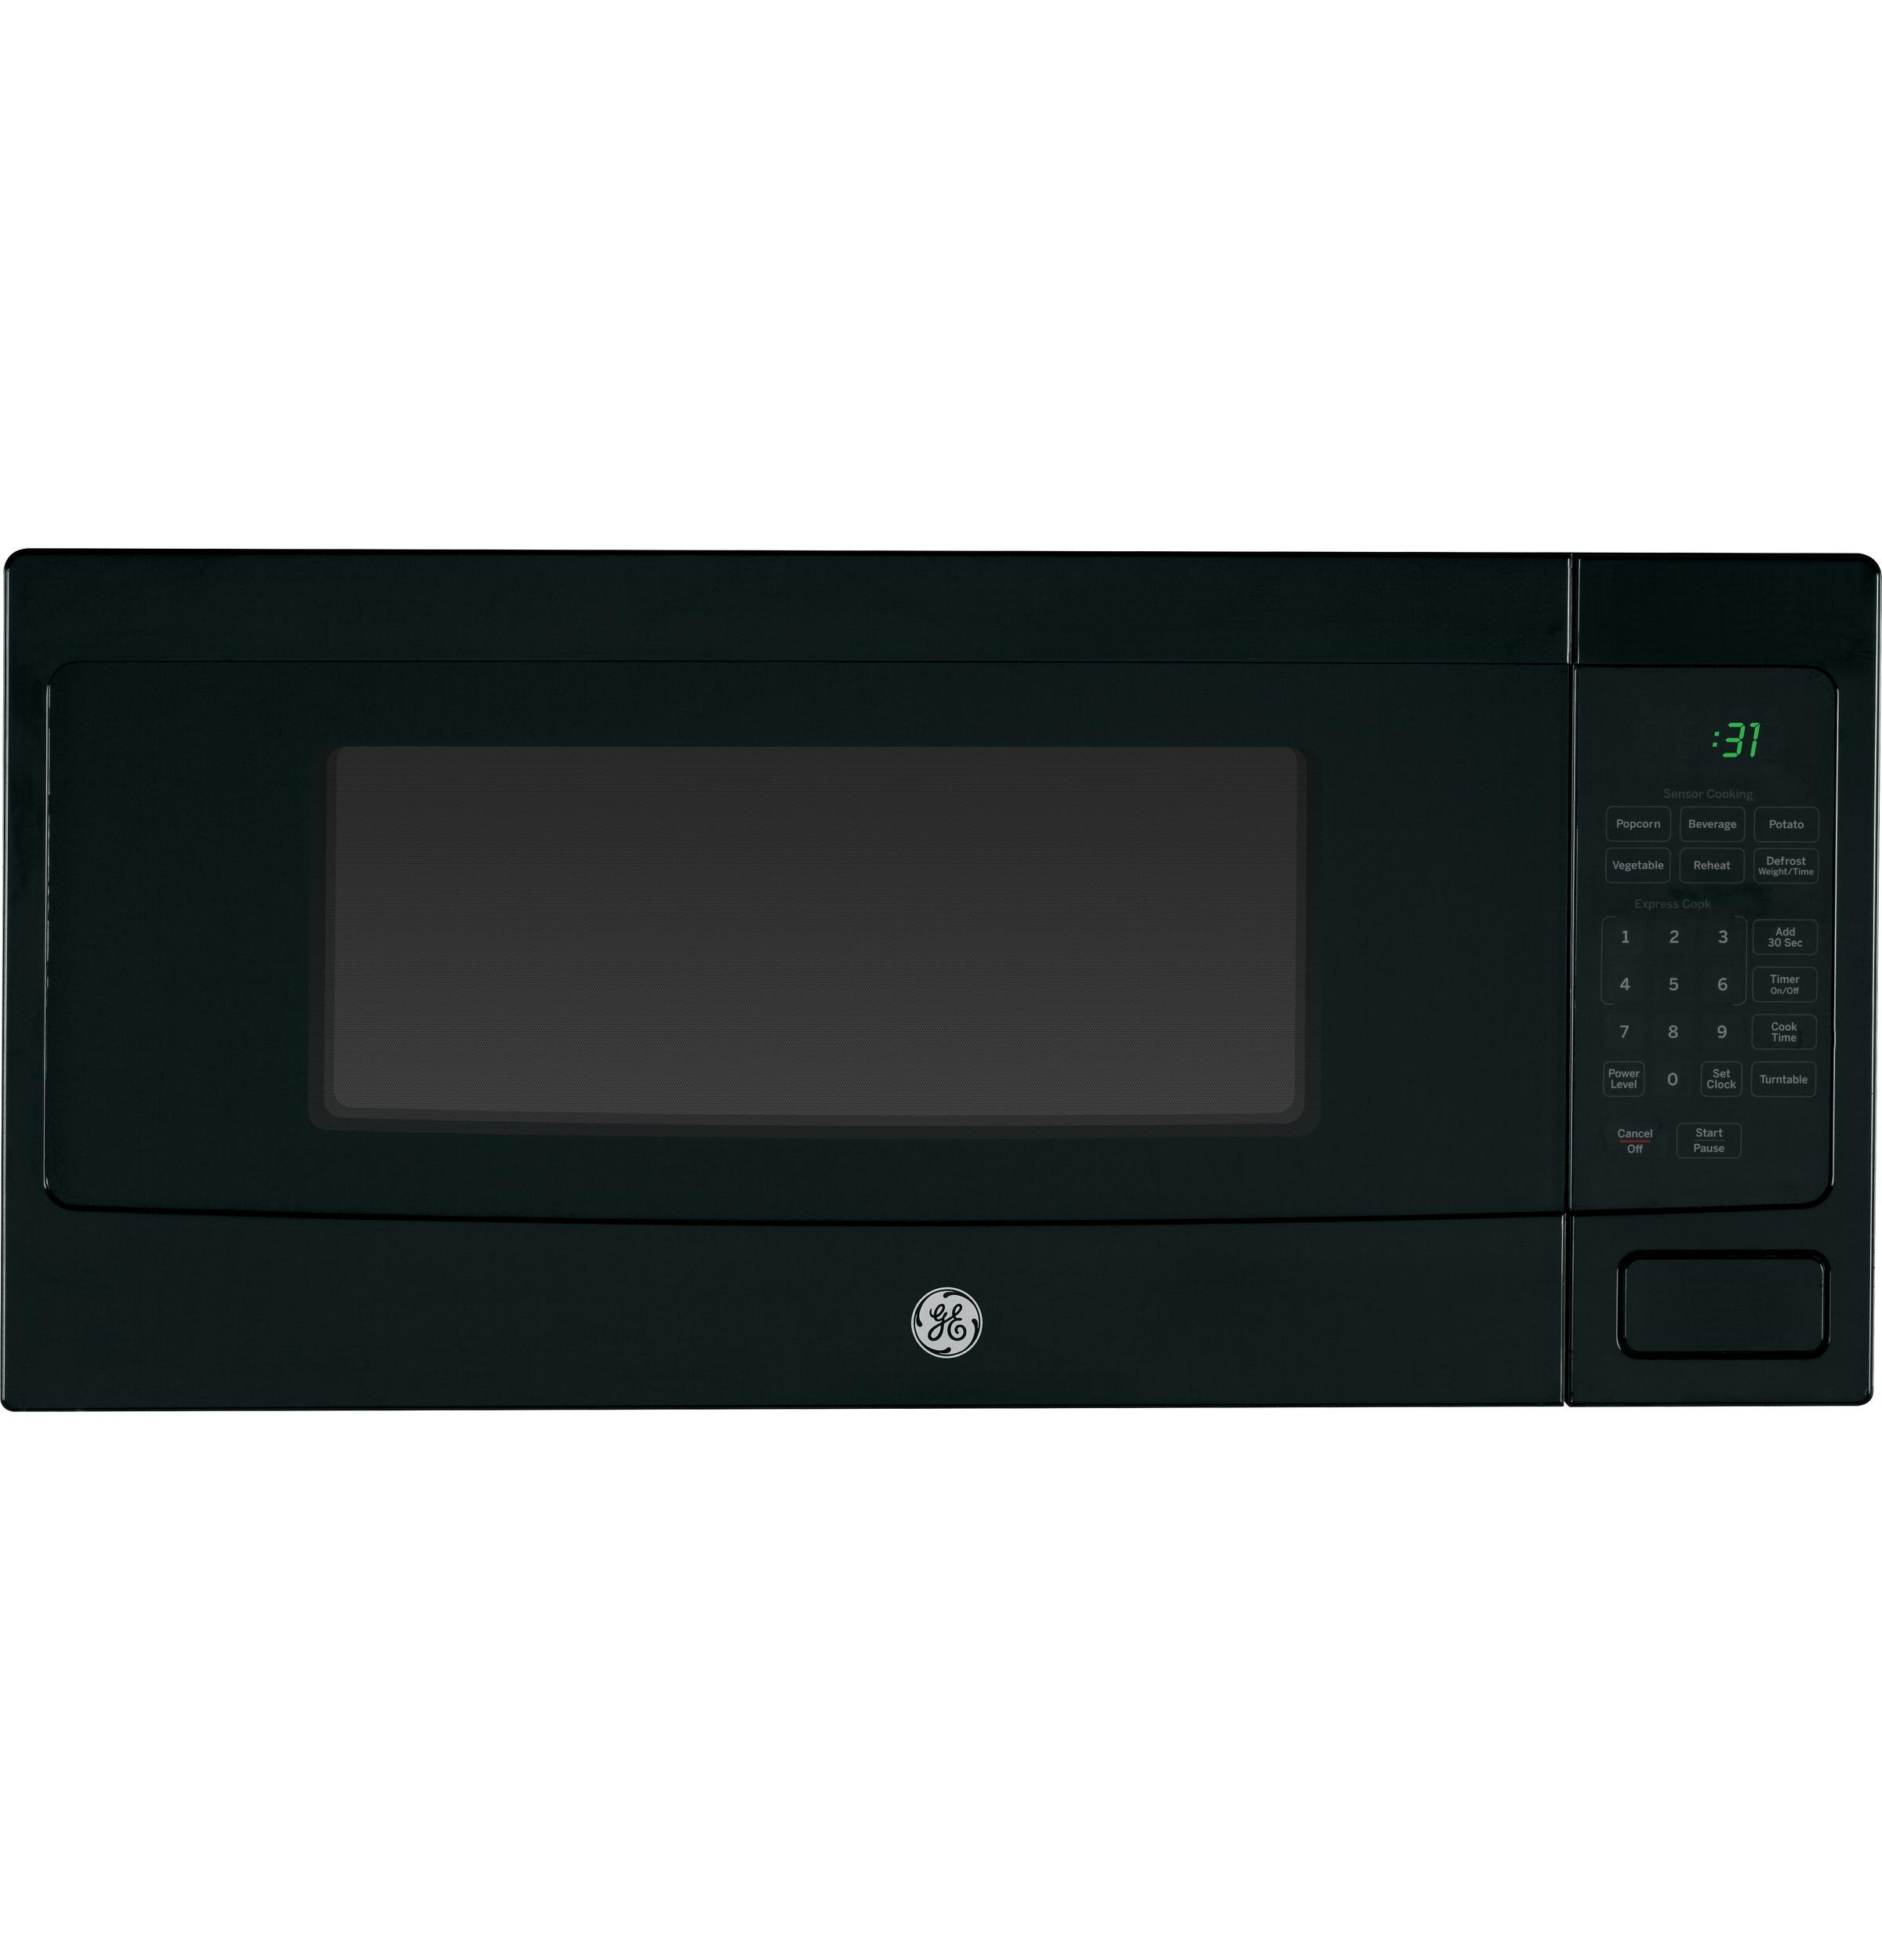 Microwaves  1.1 Cu. Ft. Countertop Microwave Oven by GE Appliances at Furniture and ApplianceMart